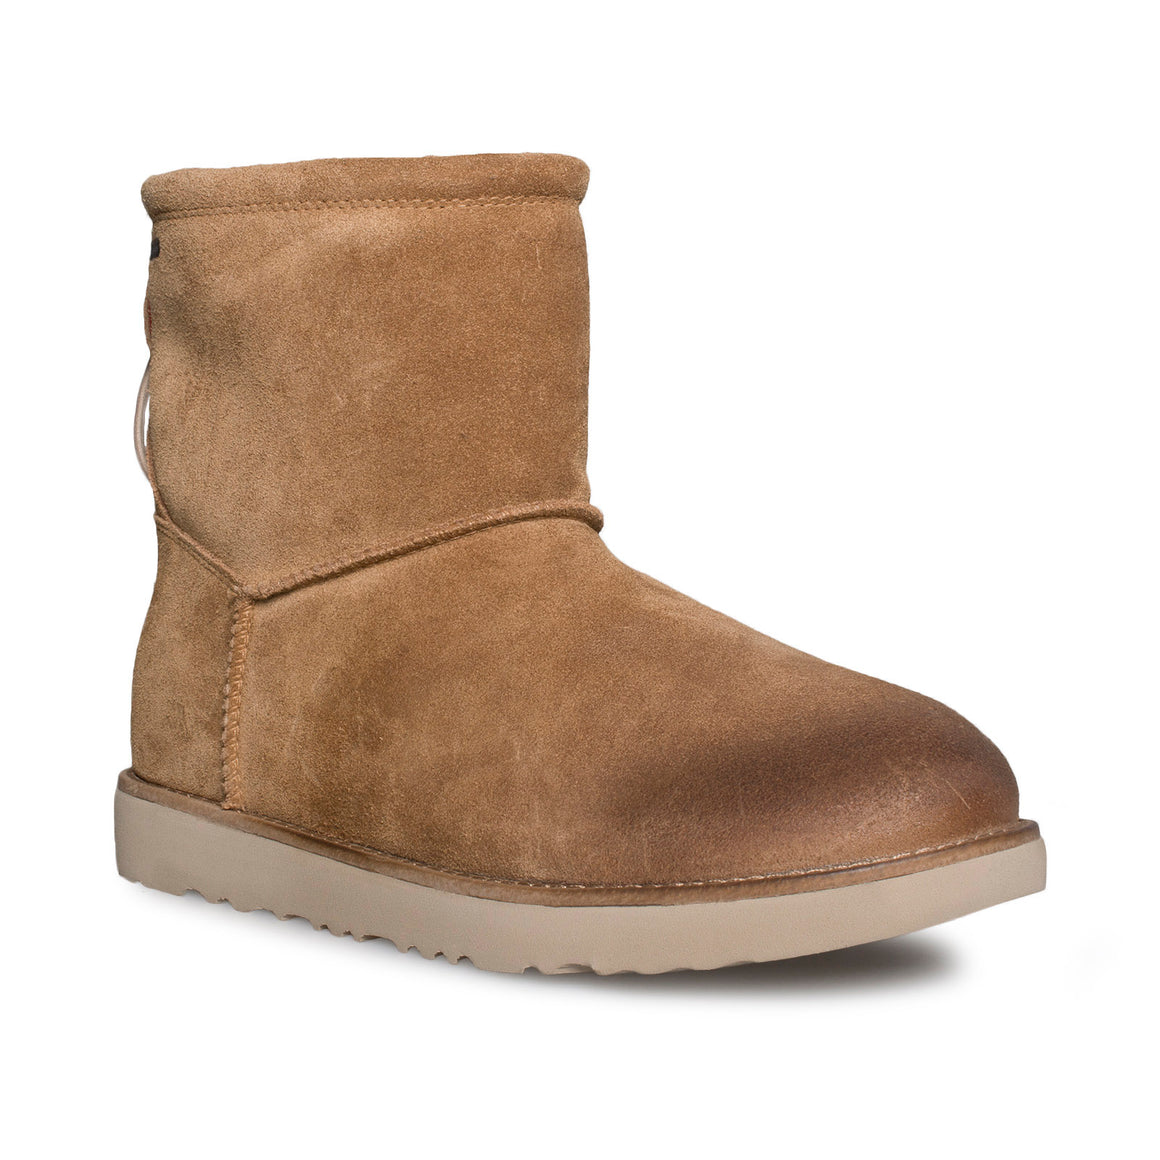 UGG Classic Toggle WP Chestnut Boots - Men's